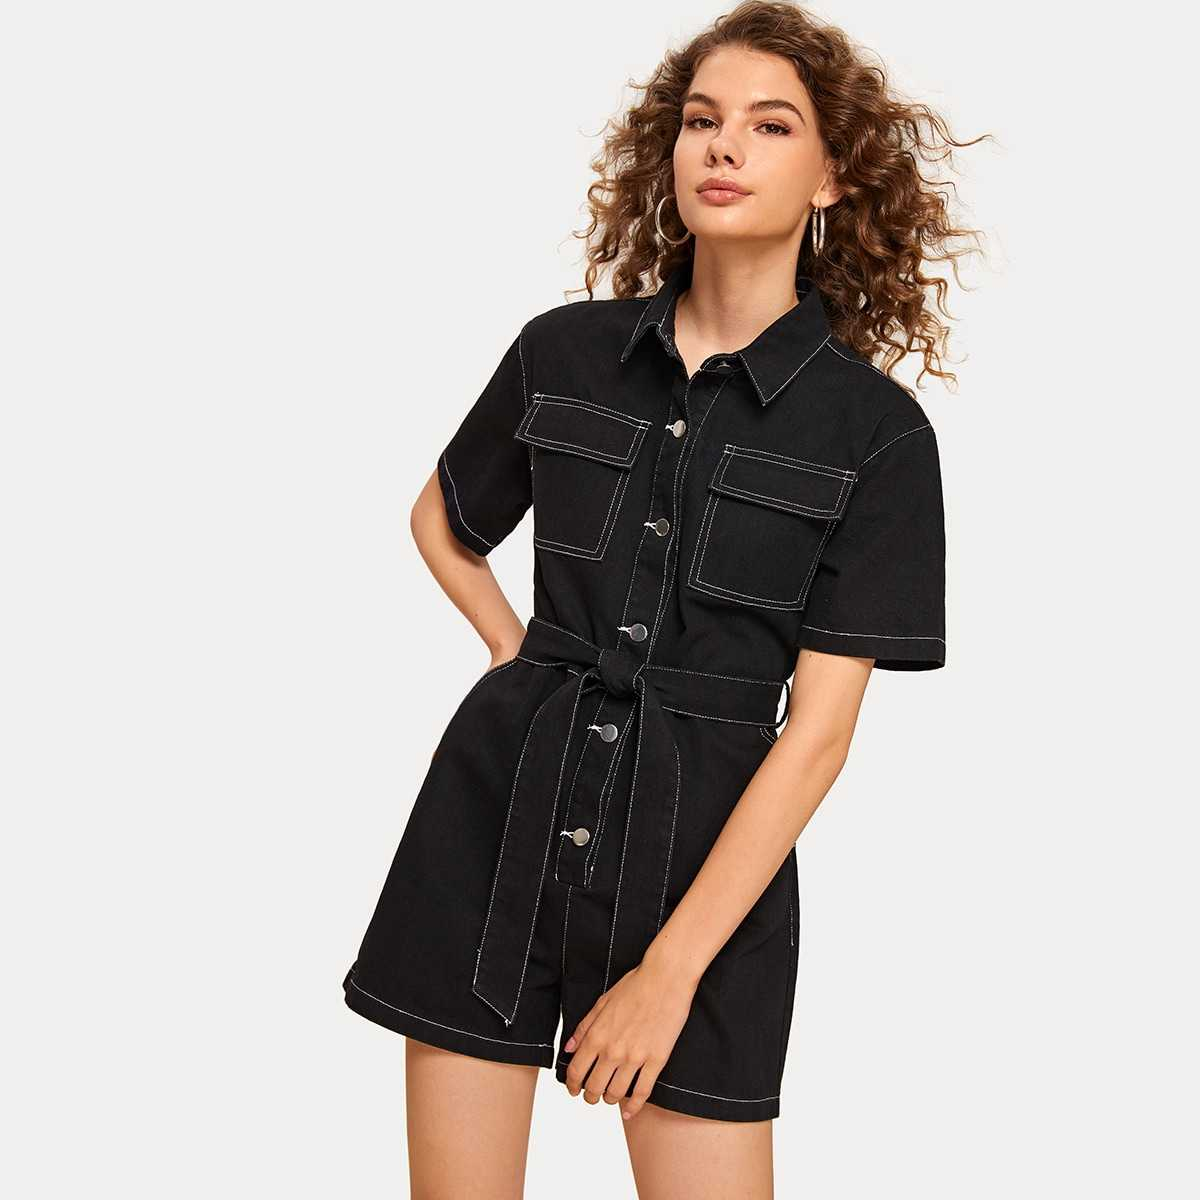 Topstitching Pocket Front Belted Denim Overalls in Black by ROMWE on GOOFASH